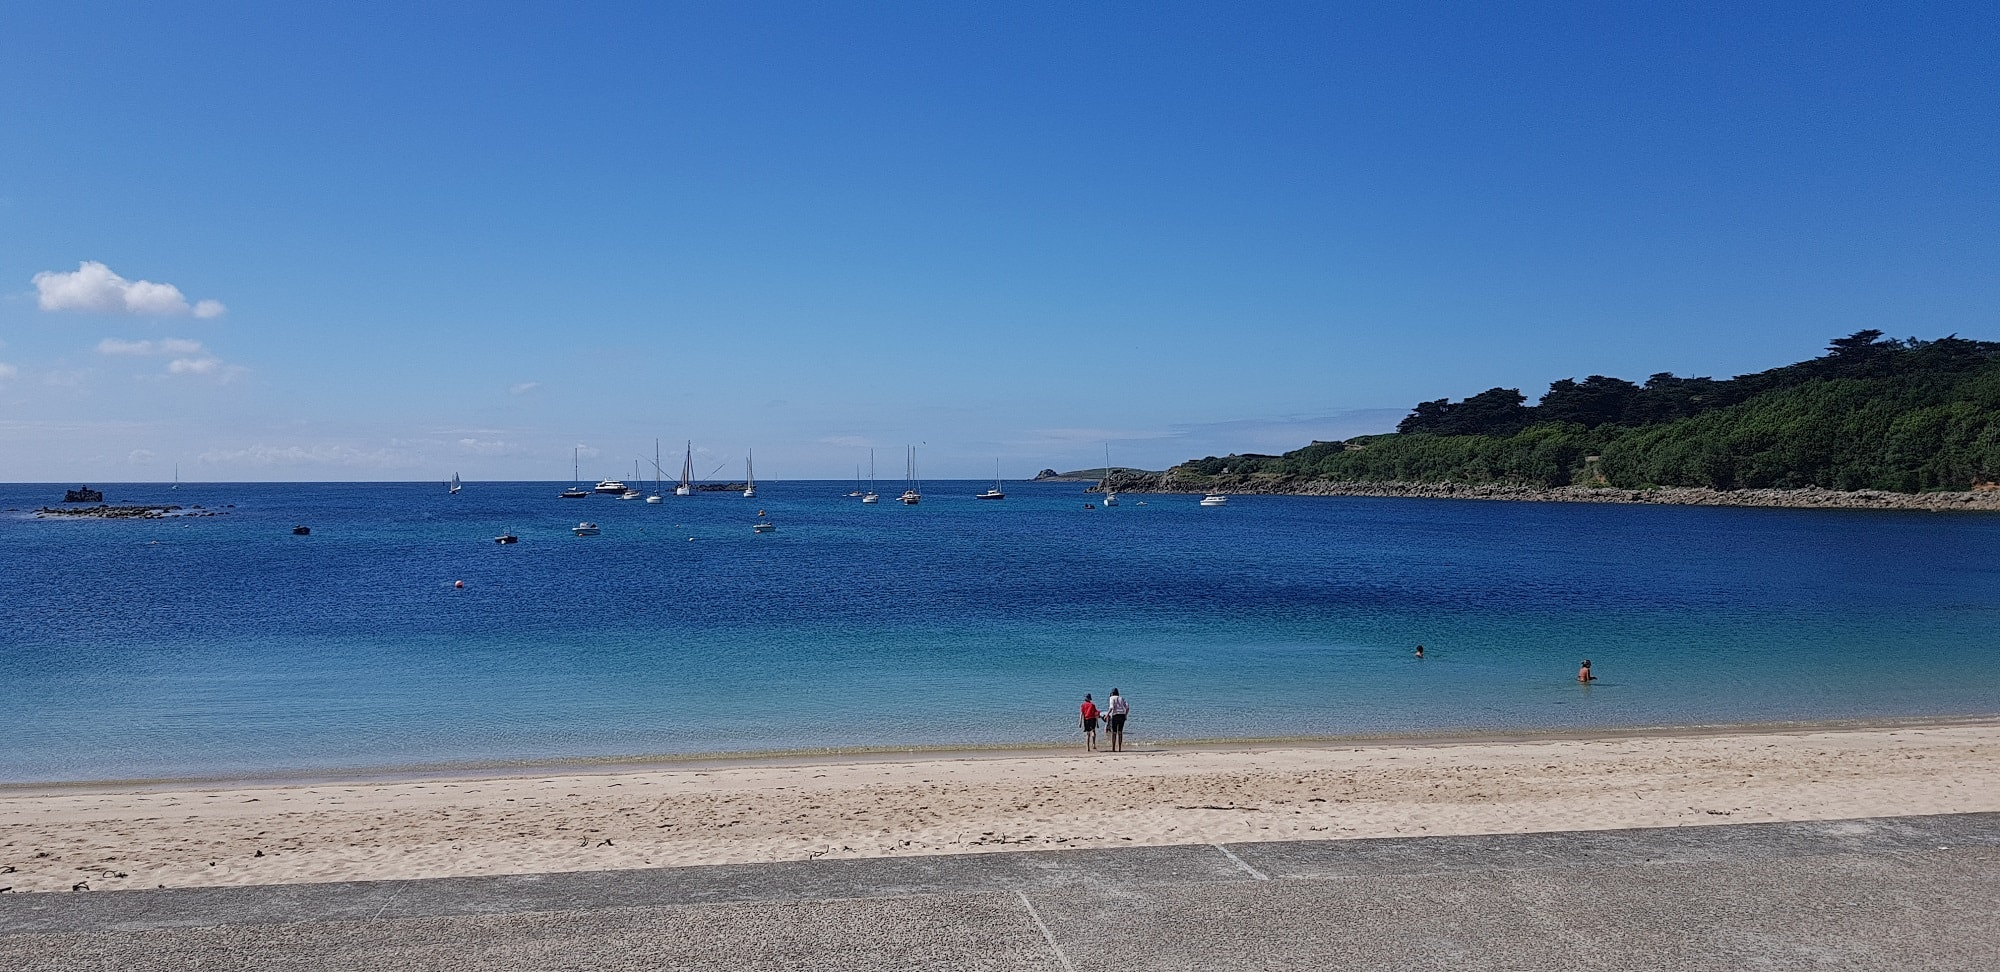 Things to do on St Mary's - Fish and Chips on Porthcressa Beach